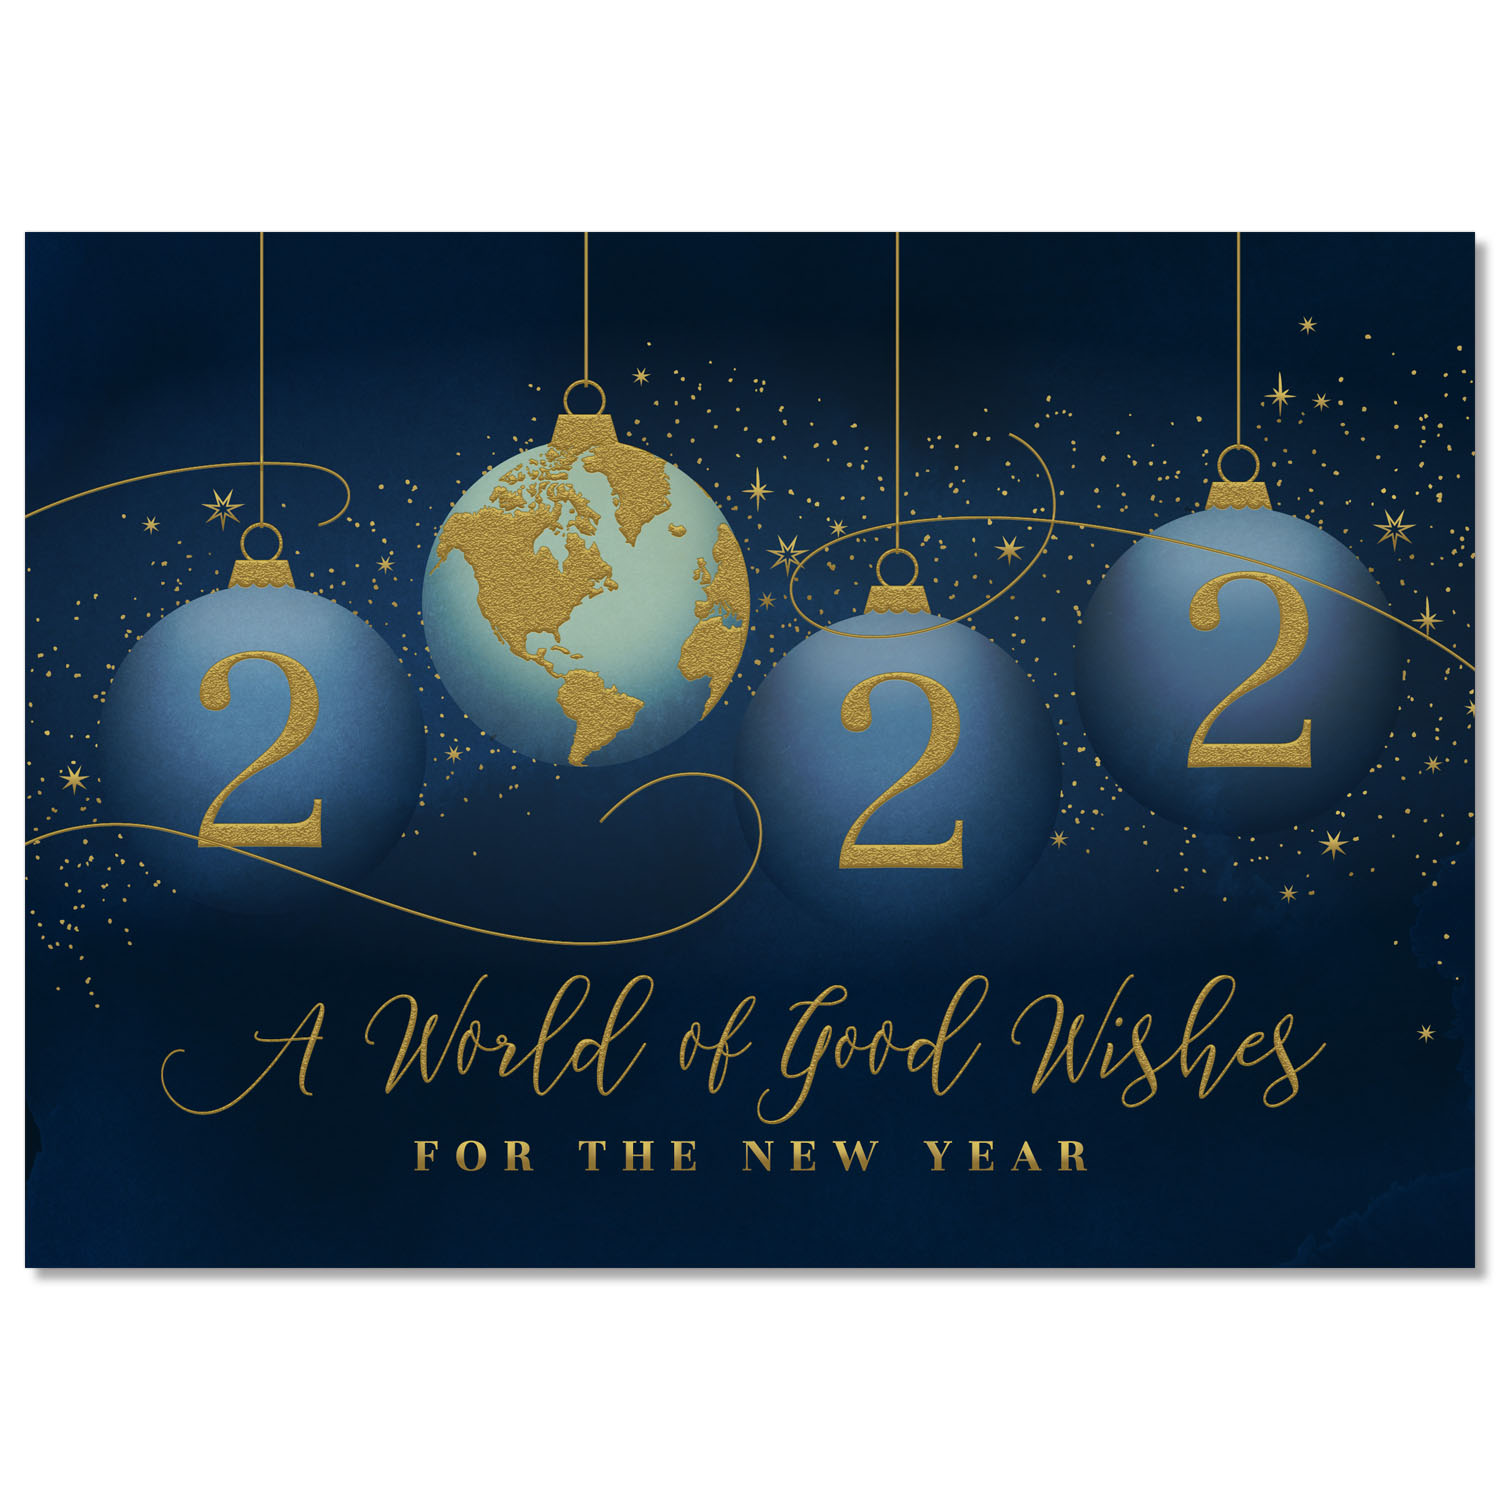 Year of Good Wishes 2022 Holiday Card